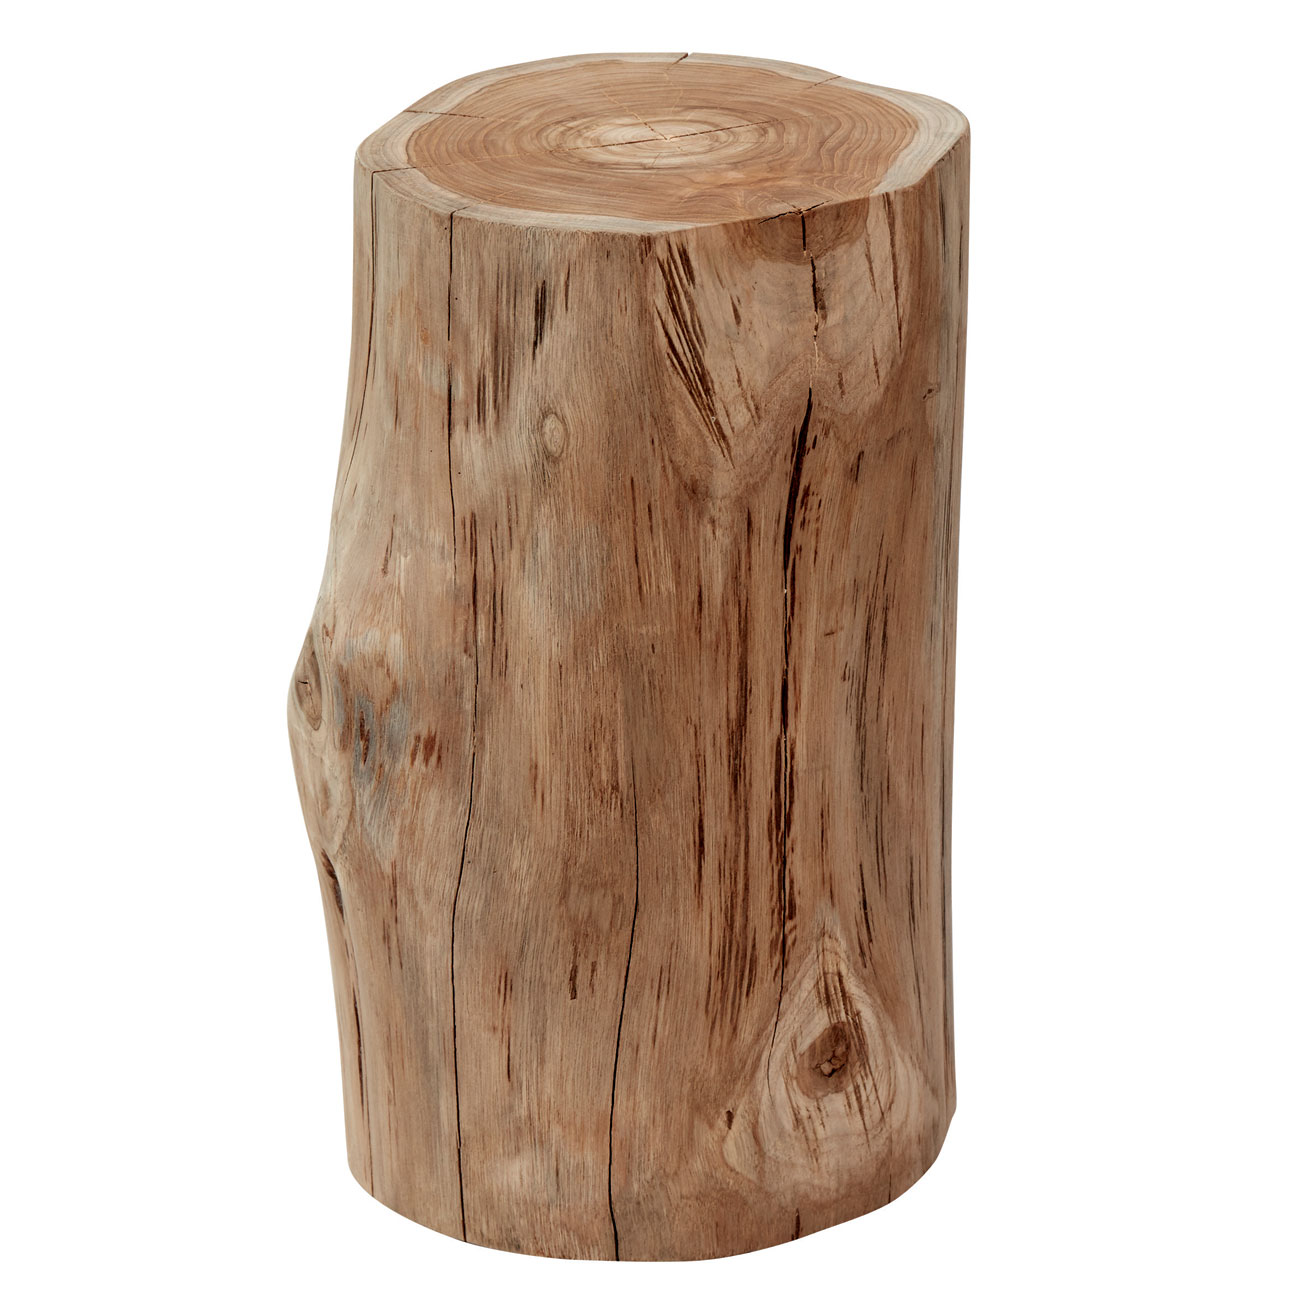 Gloster natural teak stool side table luxury outdoor living for Outdoor teak side table